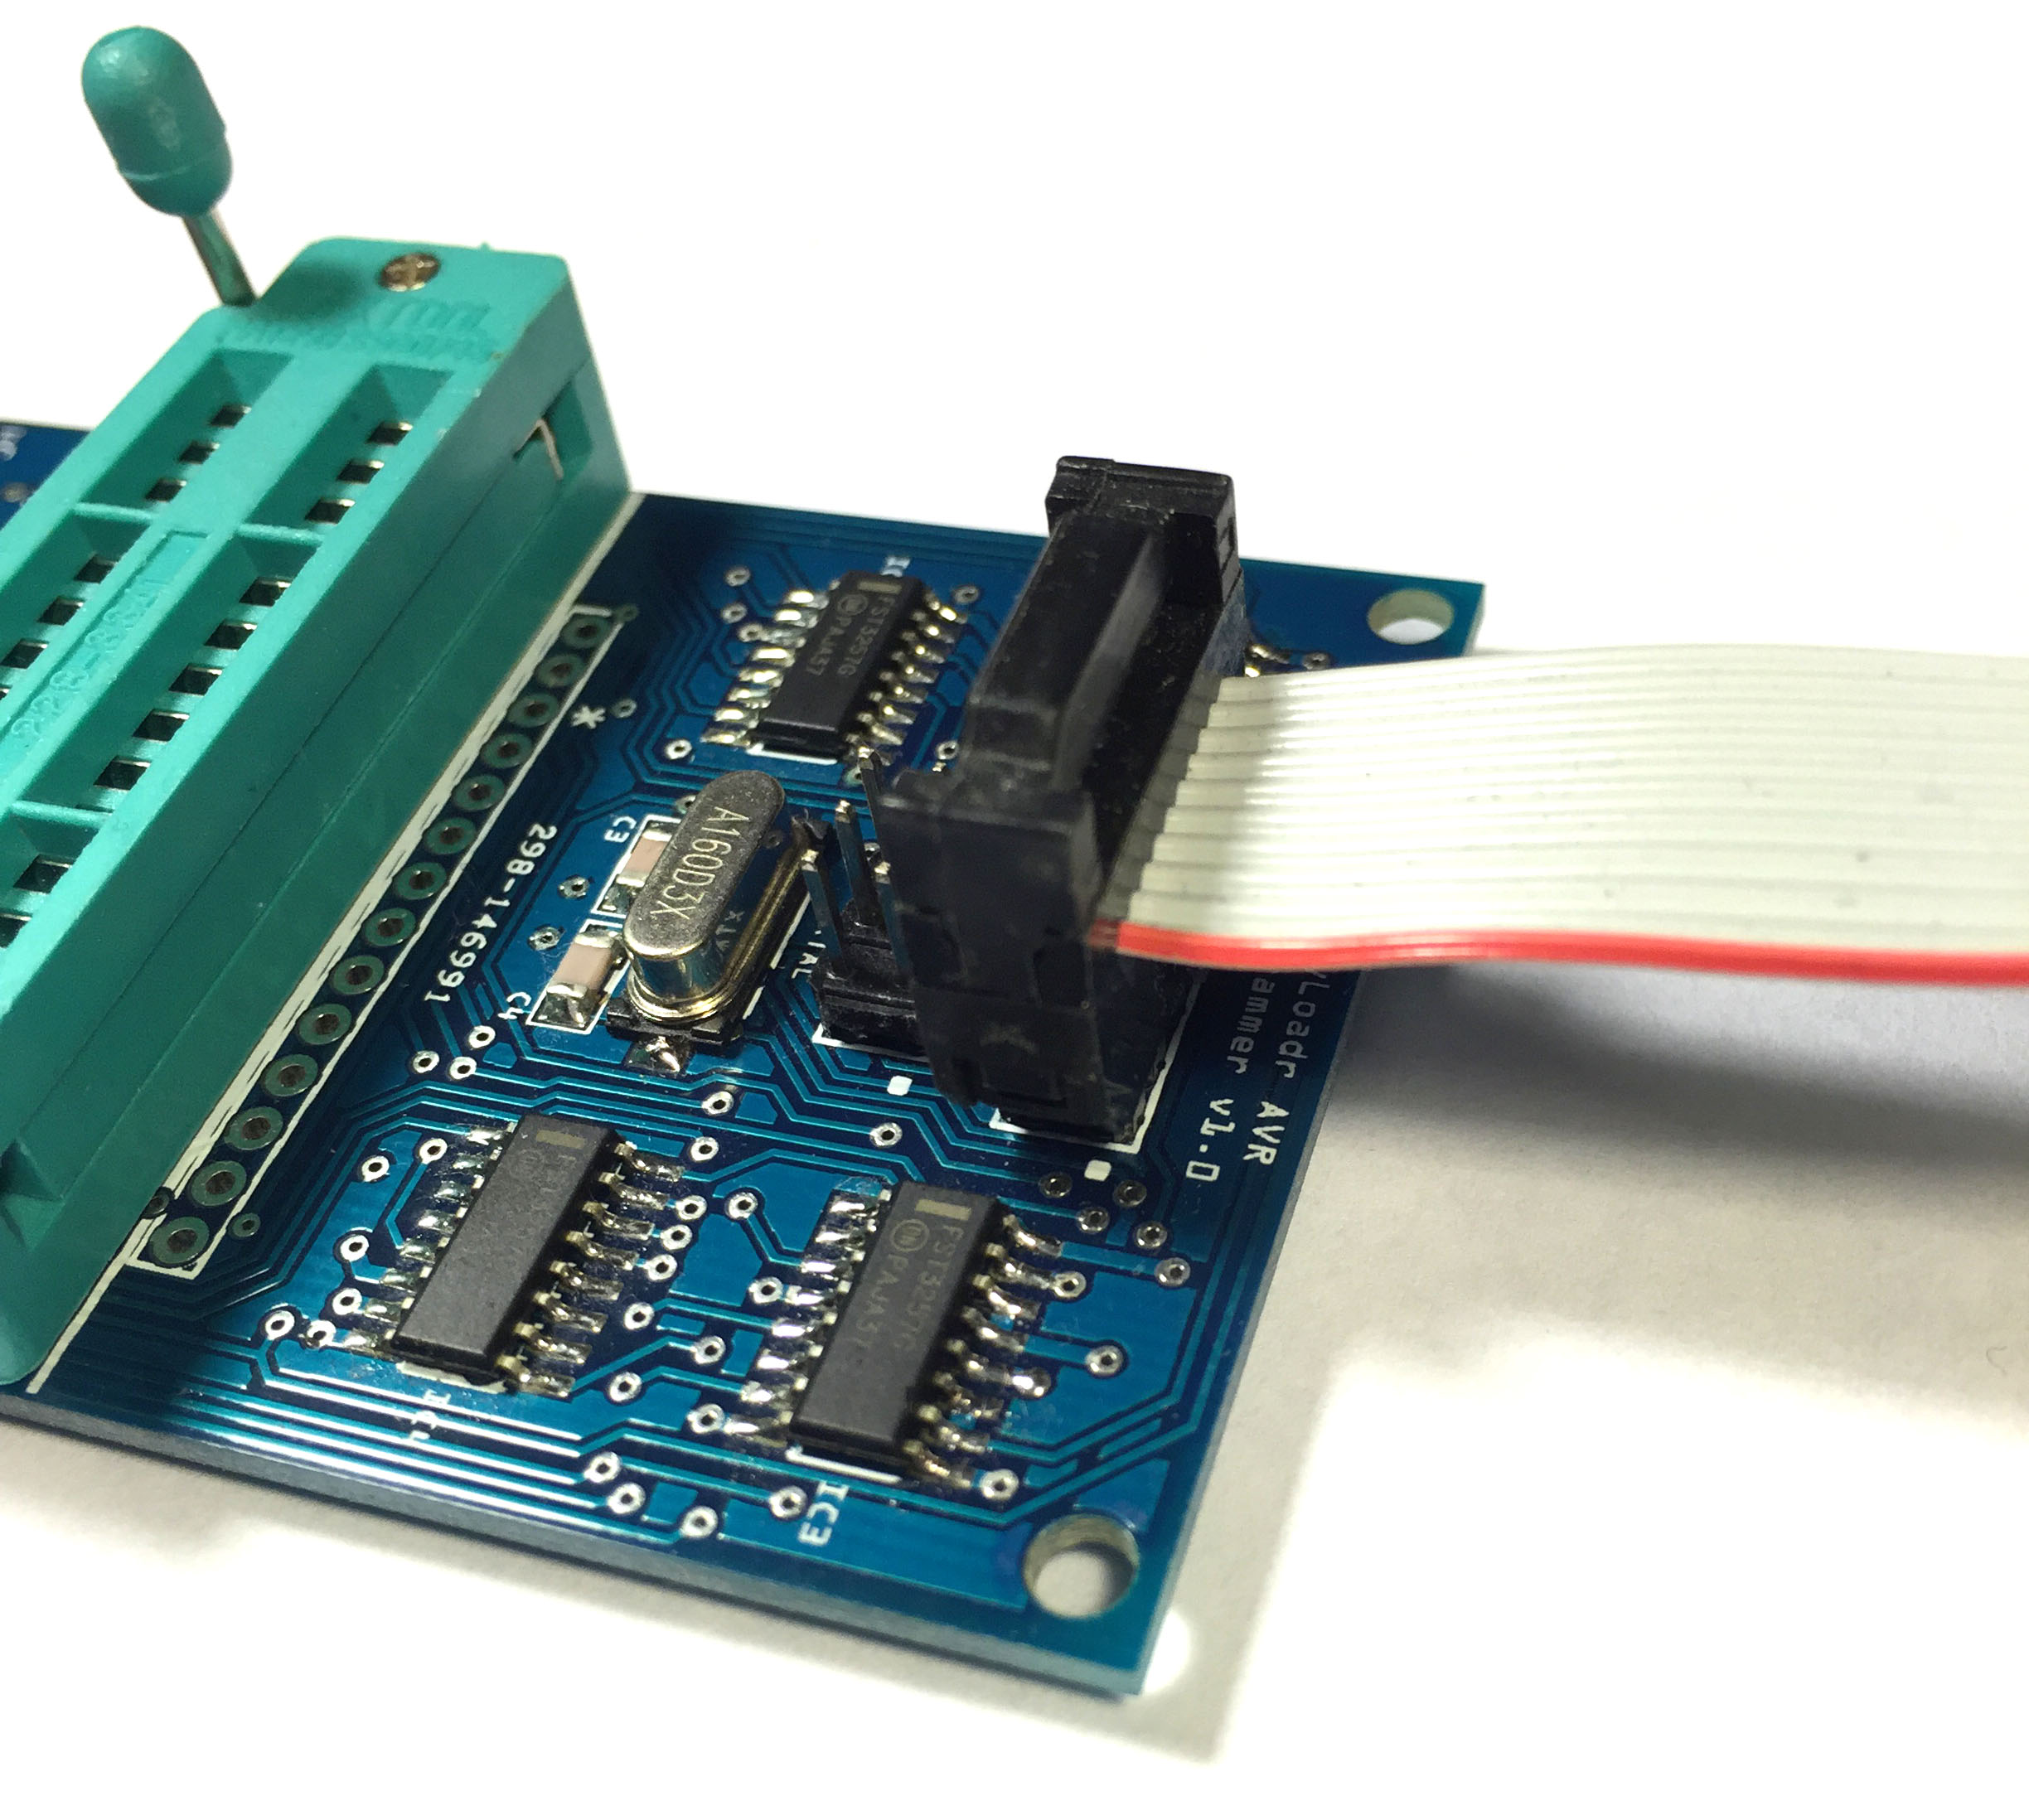 6 and 10-pin ICSP headers for programming other boards (ribbon cable not included).